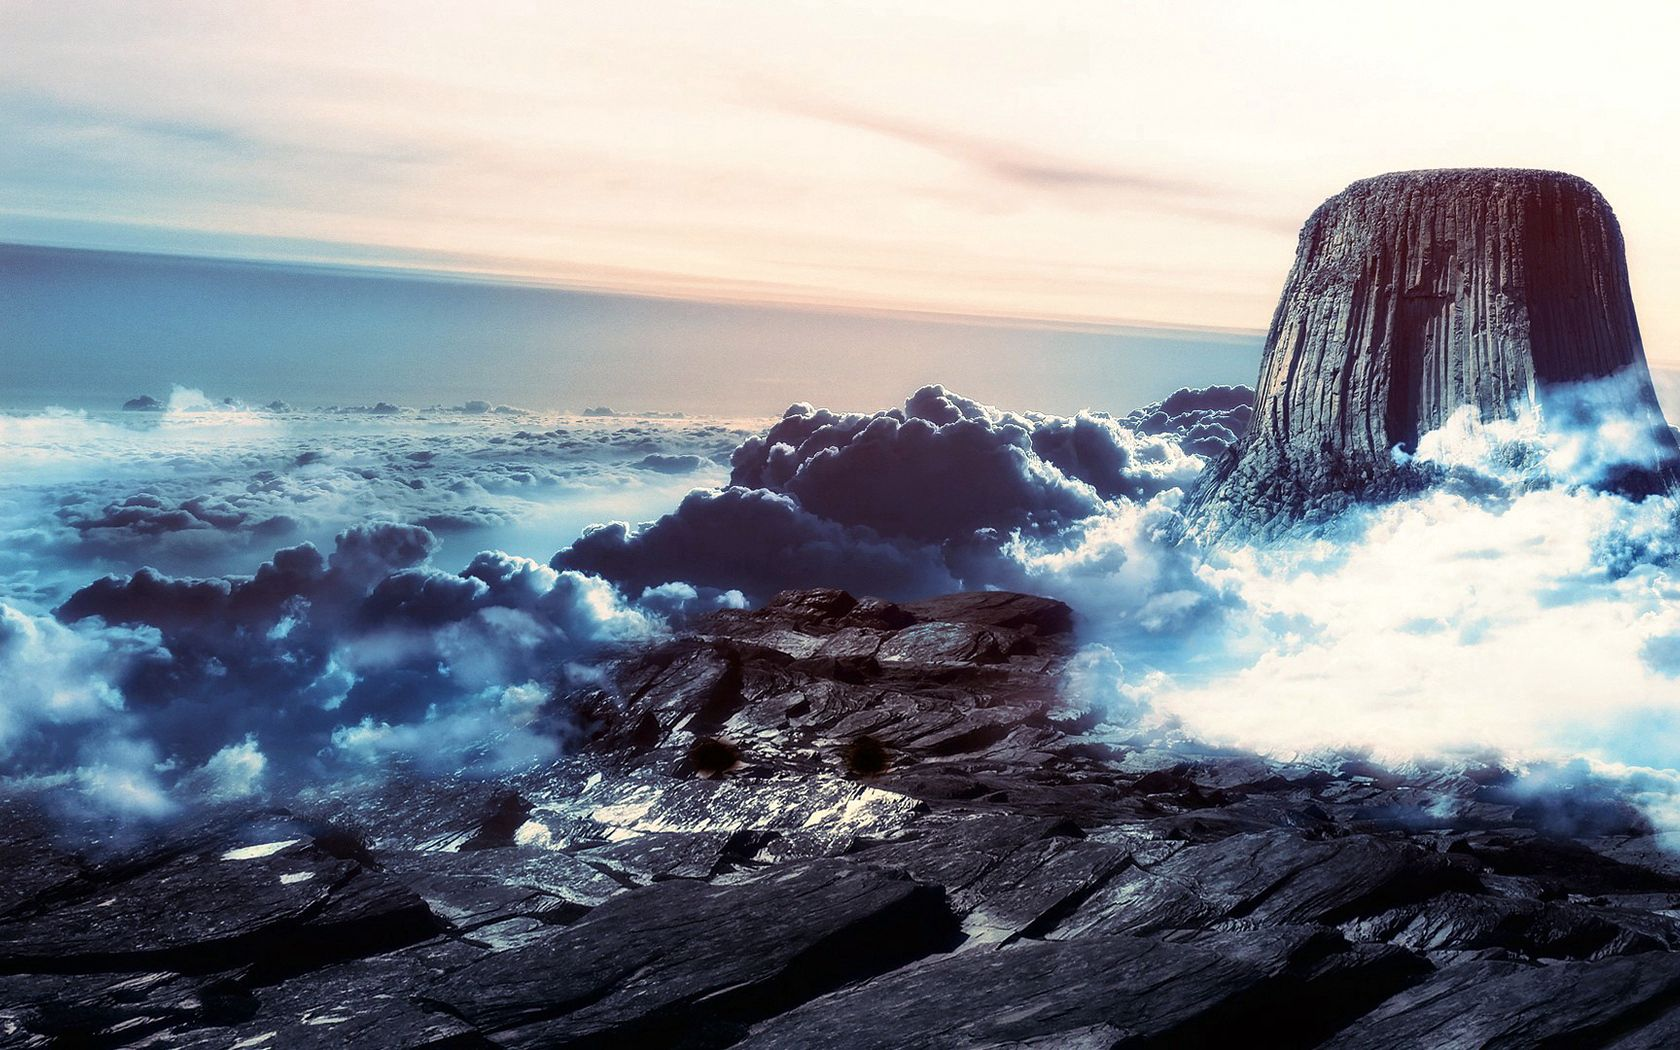 120261 download wallpaper Nature, Stone, Vertex, Top, Ridge, Spine, Clouds, Height, Mountains screensavers and pictures for free